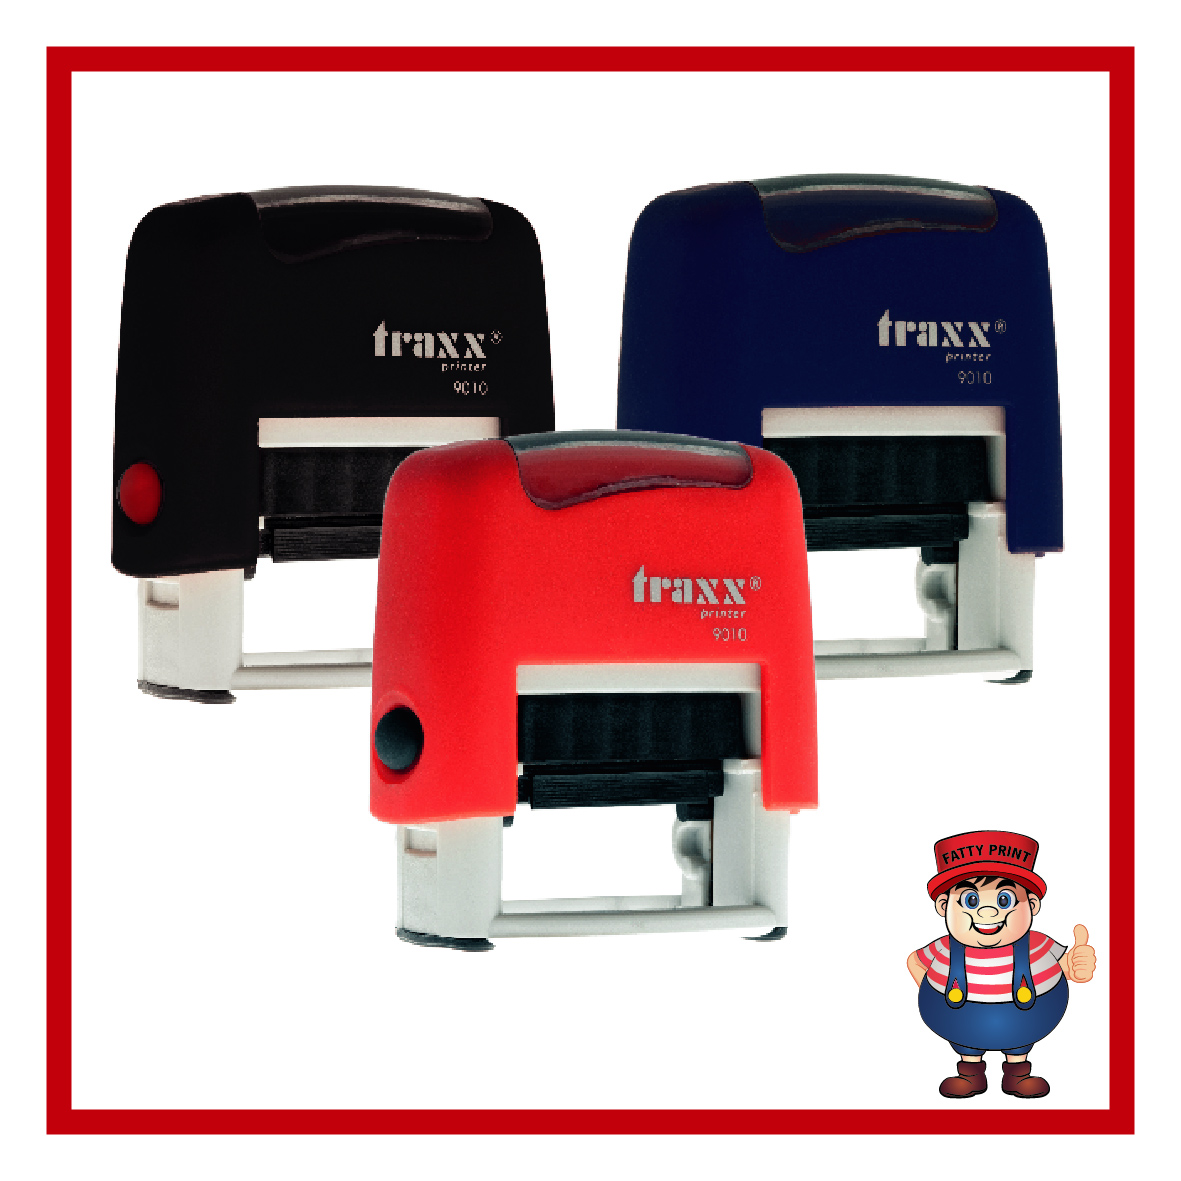 Traxx Self-Inking Stamps